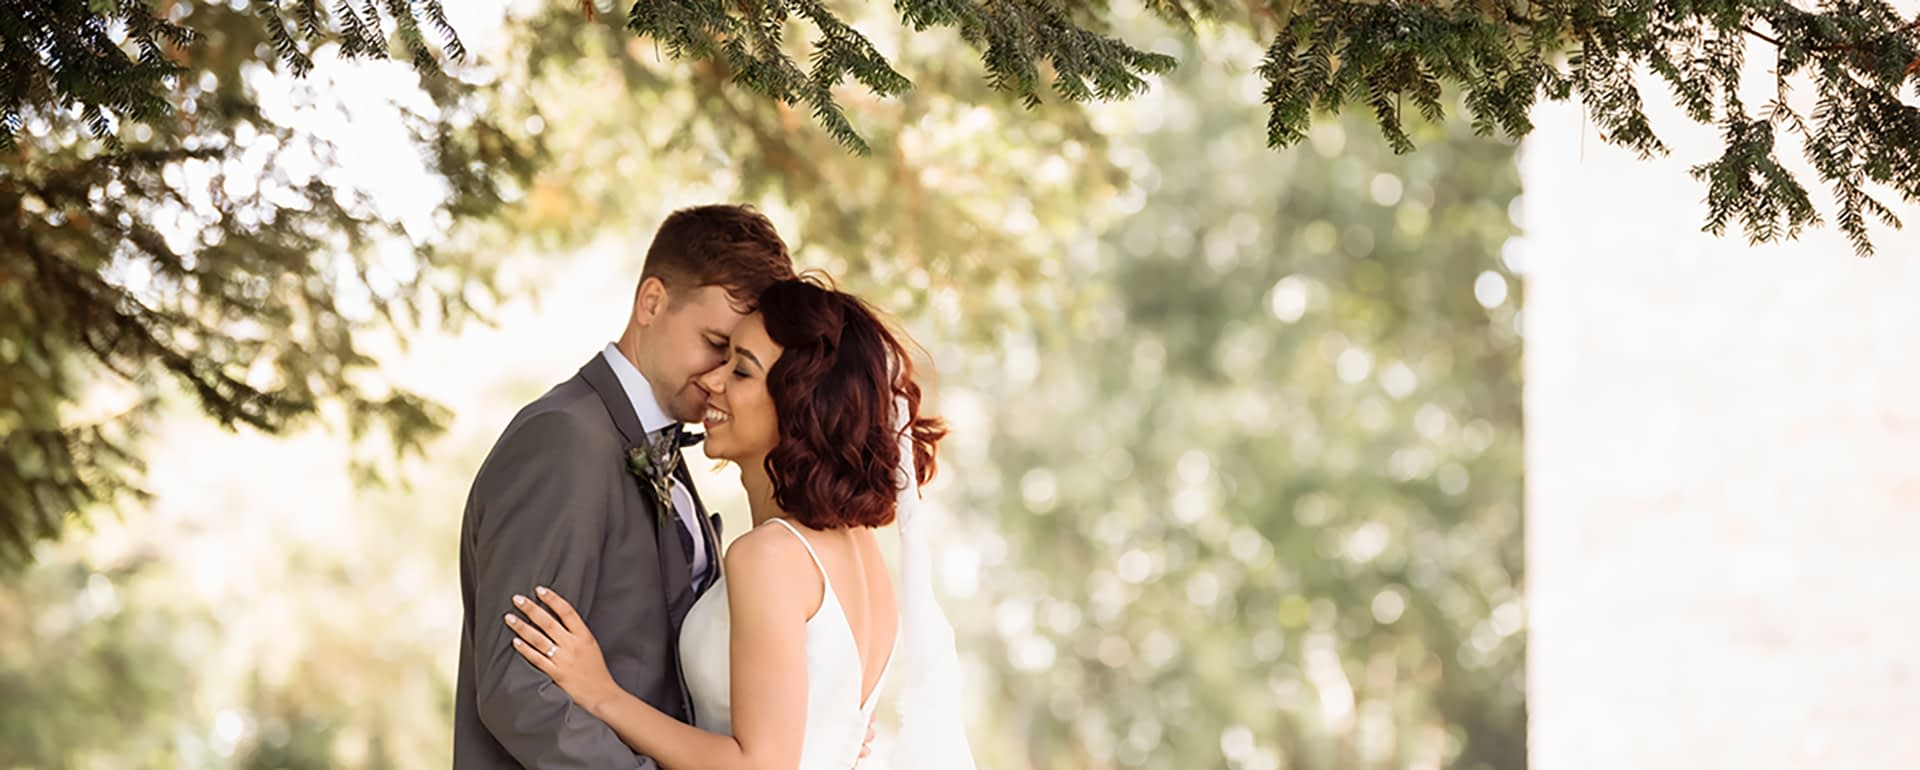 6 Things You Should Expect From a Wedding Day Coordinator